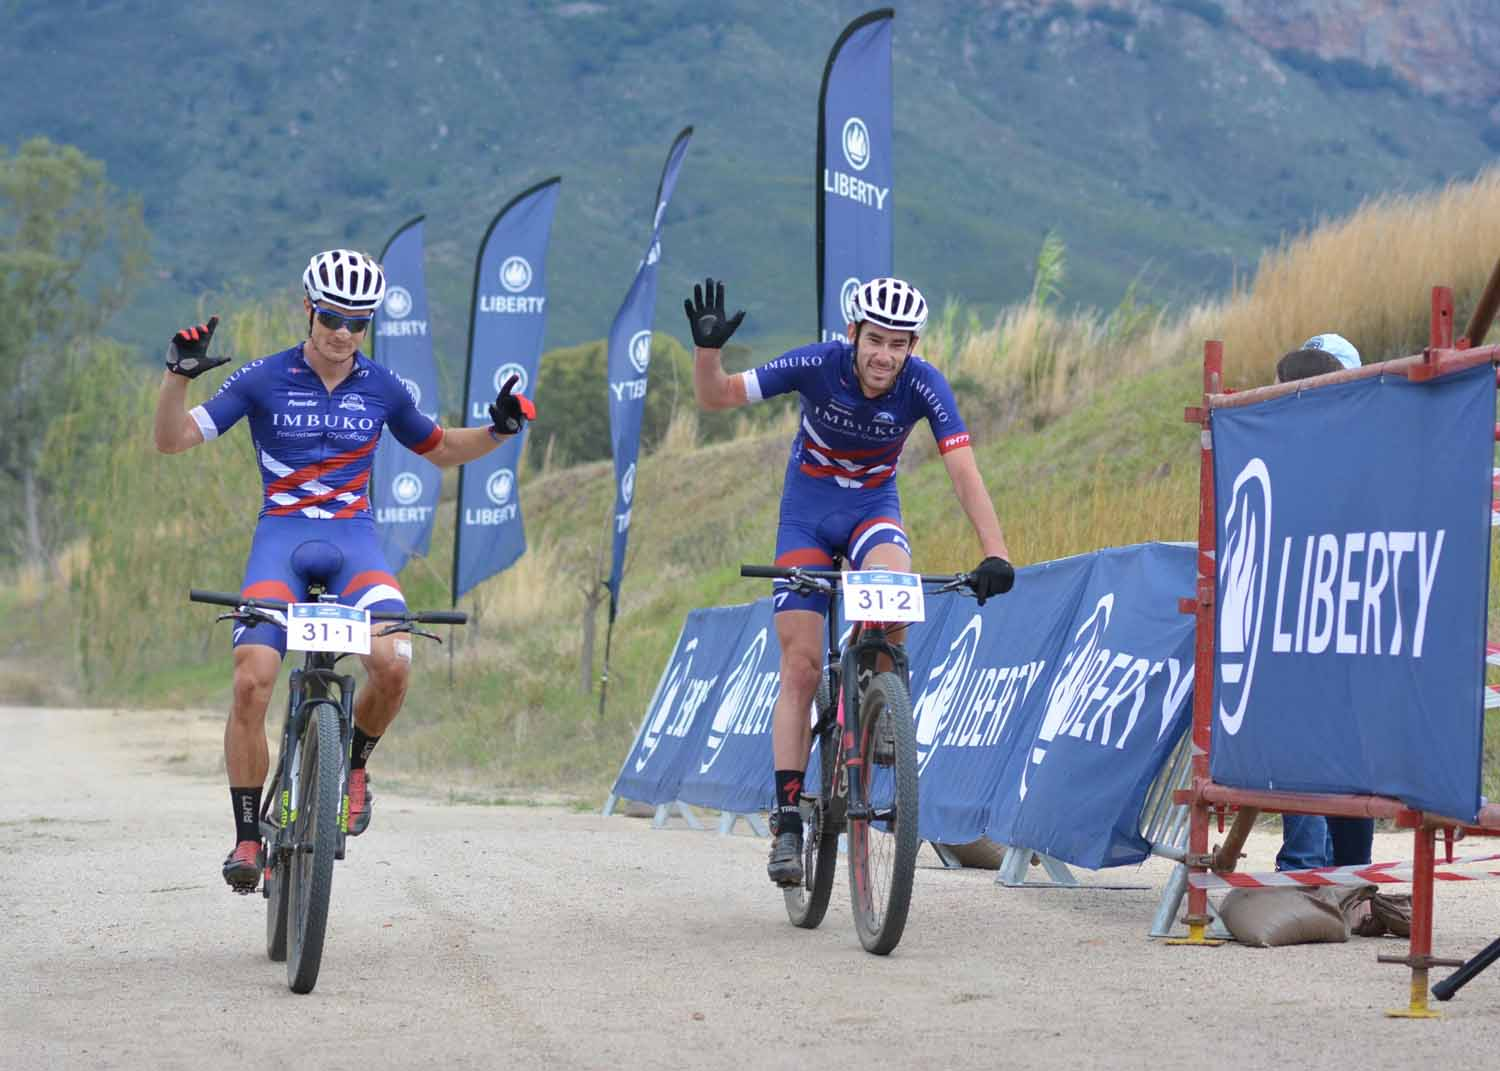 Chris Wolhuter (left) and Craig Boyes of Imbuko-Freewheel Cycology win the overall title of the 2016 Liberty Winelands MTB Encounter on Saturday. Photo: Full Stop Communications